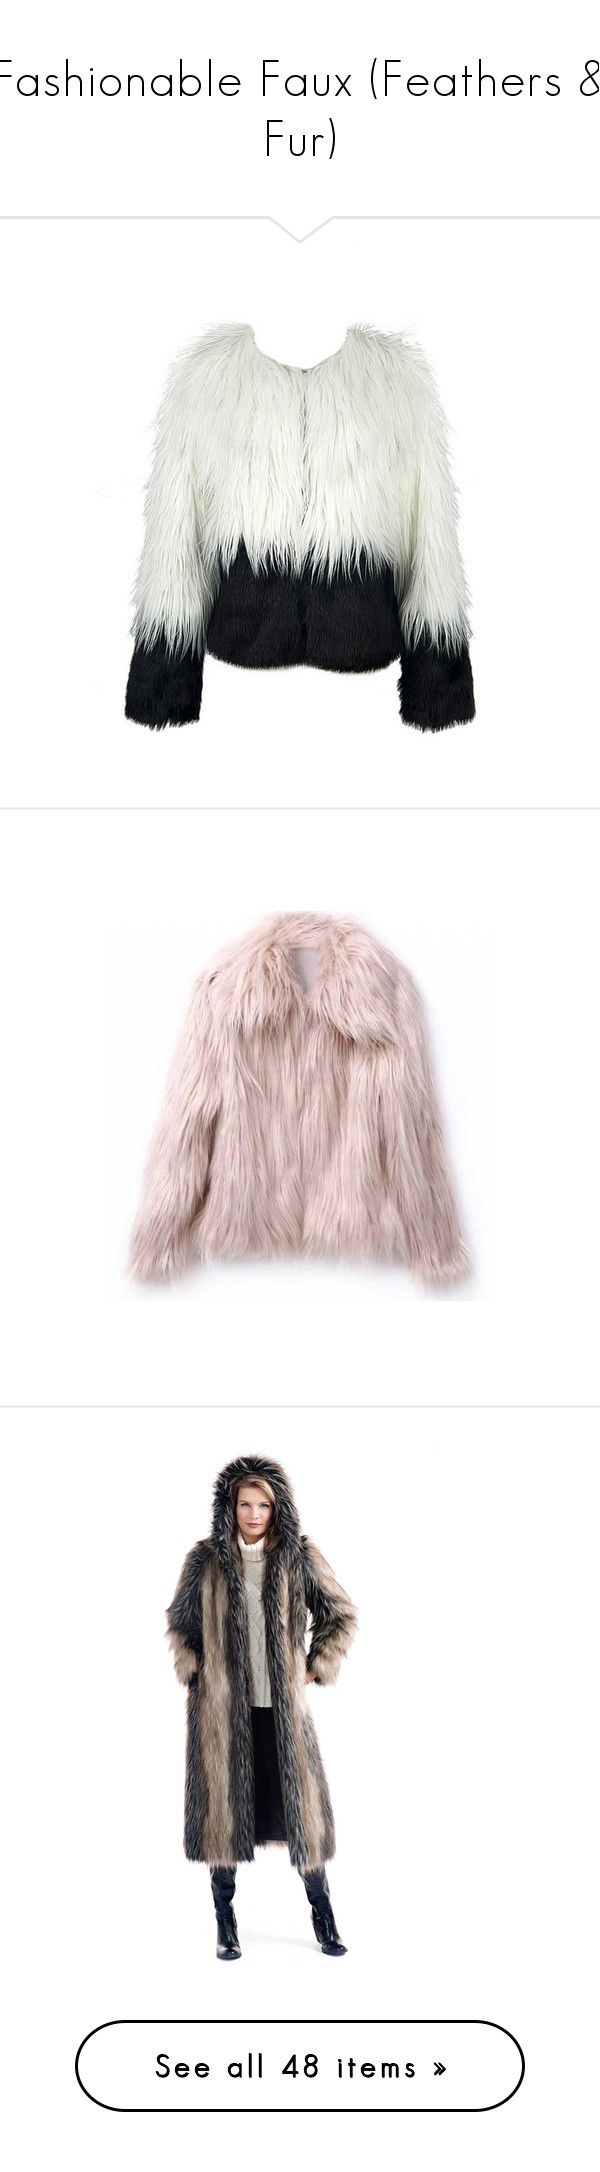 """""""Fashionable Faux (Feathers & Fur)"""" by mysfytdesigns ❤ liked on Polyvore featuring outerwear, coats, white fox coat, faux fur hooded coat, white faux fur coats, faux fox fur coat, hooded coat, jackets, black and oversized jackets"""